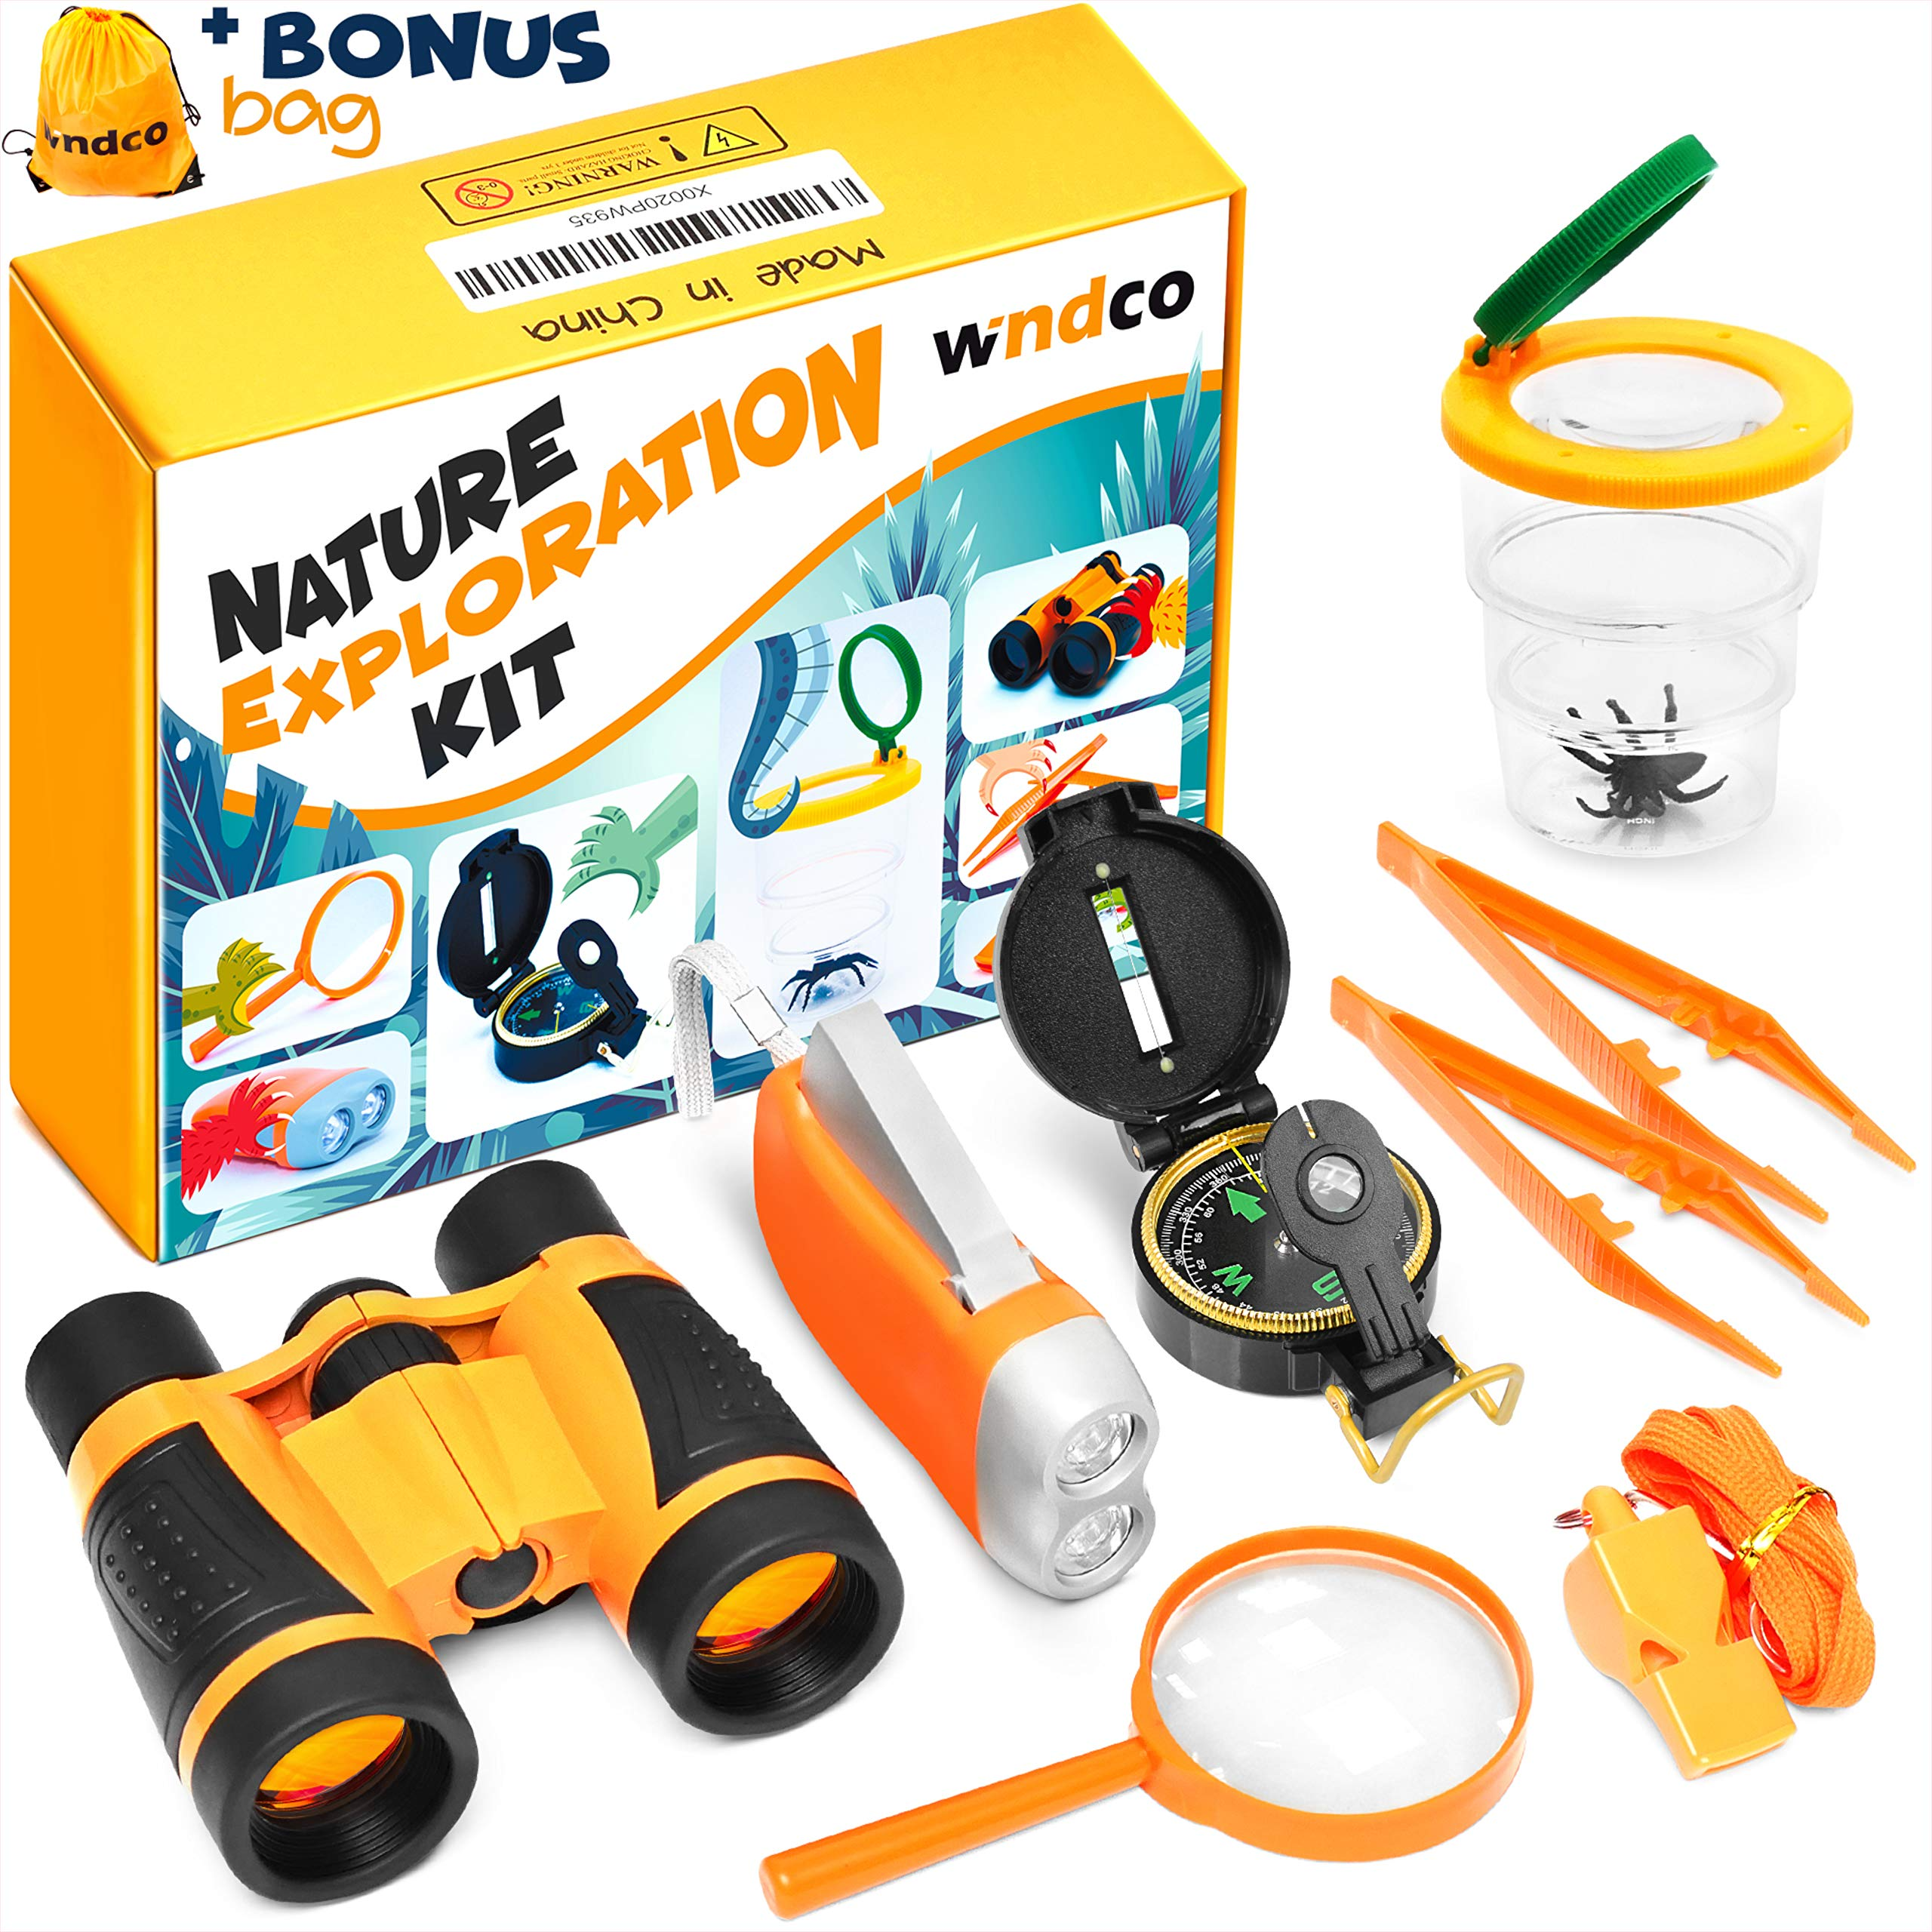 Windco Kids Explorer Kit - 10Pieces Kids Outdoor Kit - Boys Camping Kit with Compass and Binoculars - Kids Camping Gear - Kids Camping Set Adventure Kit for Girls and Boys - Outdoor Educational Toys by Windco